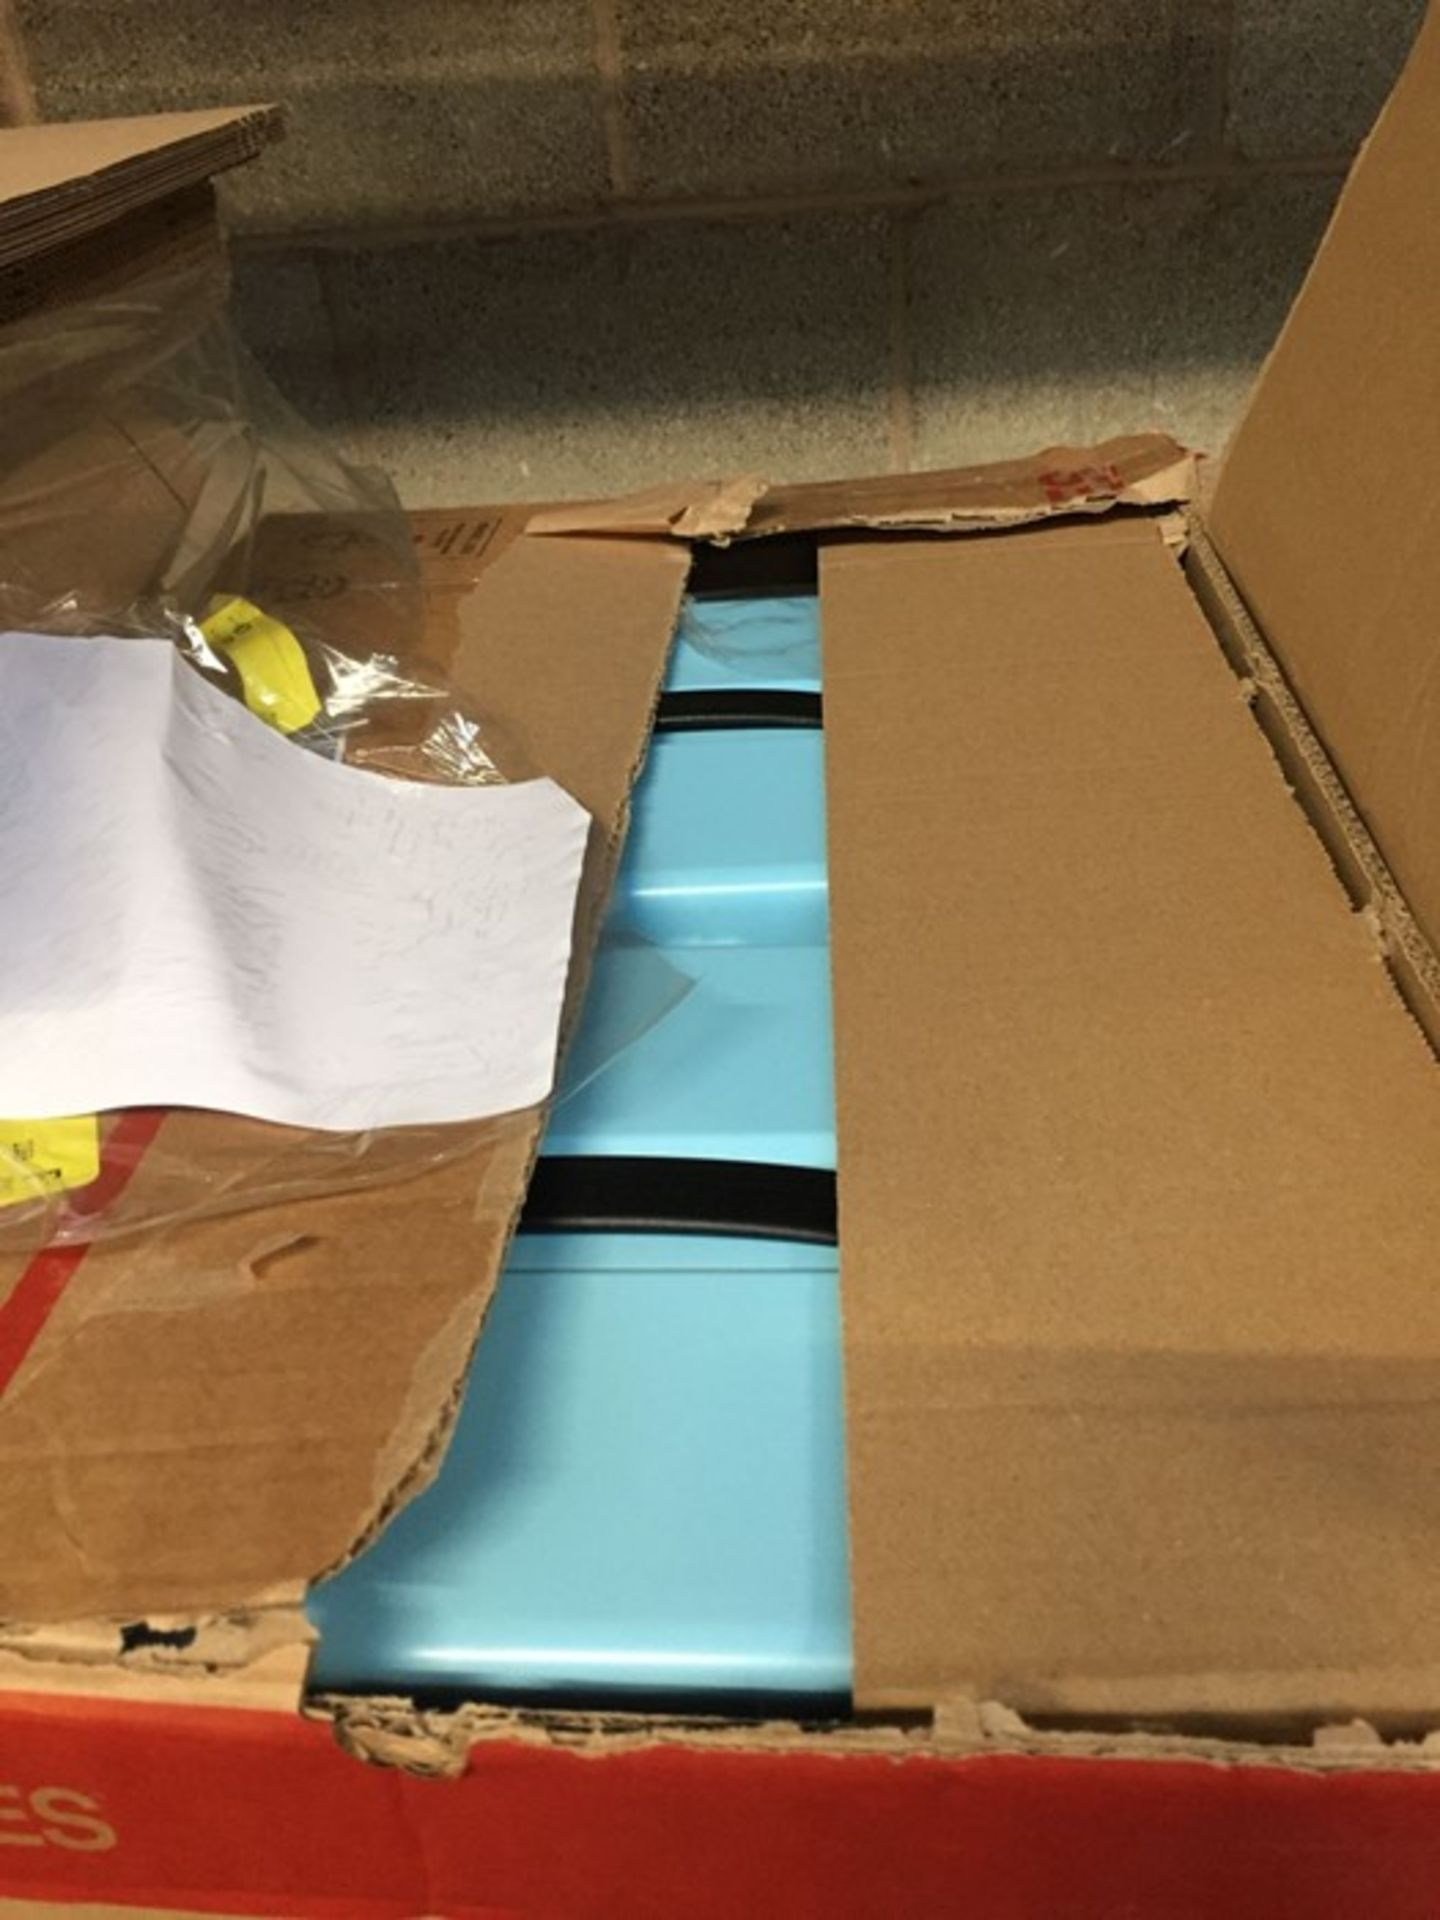 1 LOT TO CONTAIN 2 X LIGHT BLUE METAL LOCKABLE STORAGE CHESTS - L3